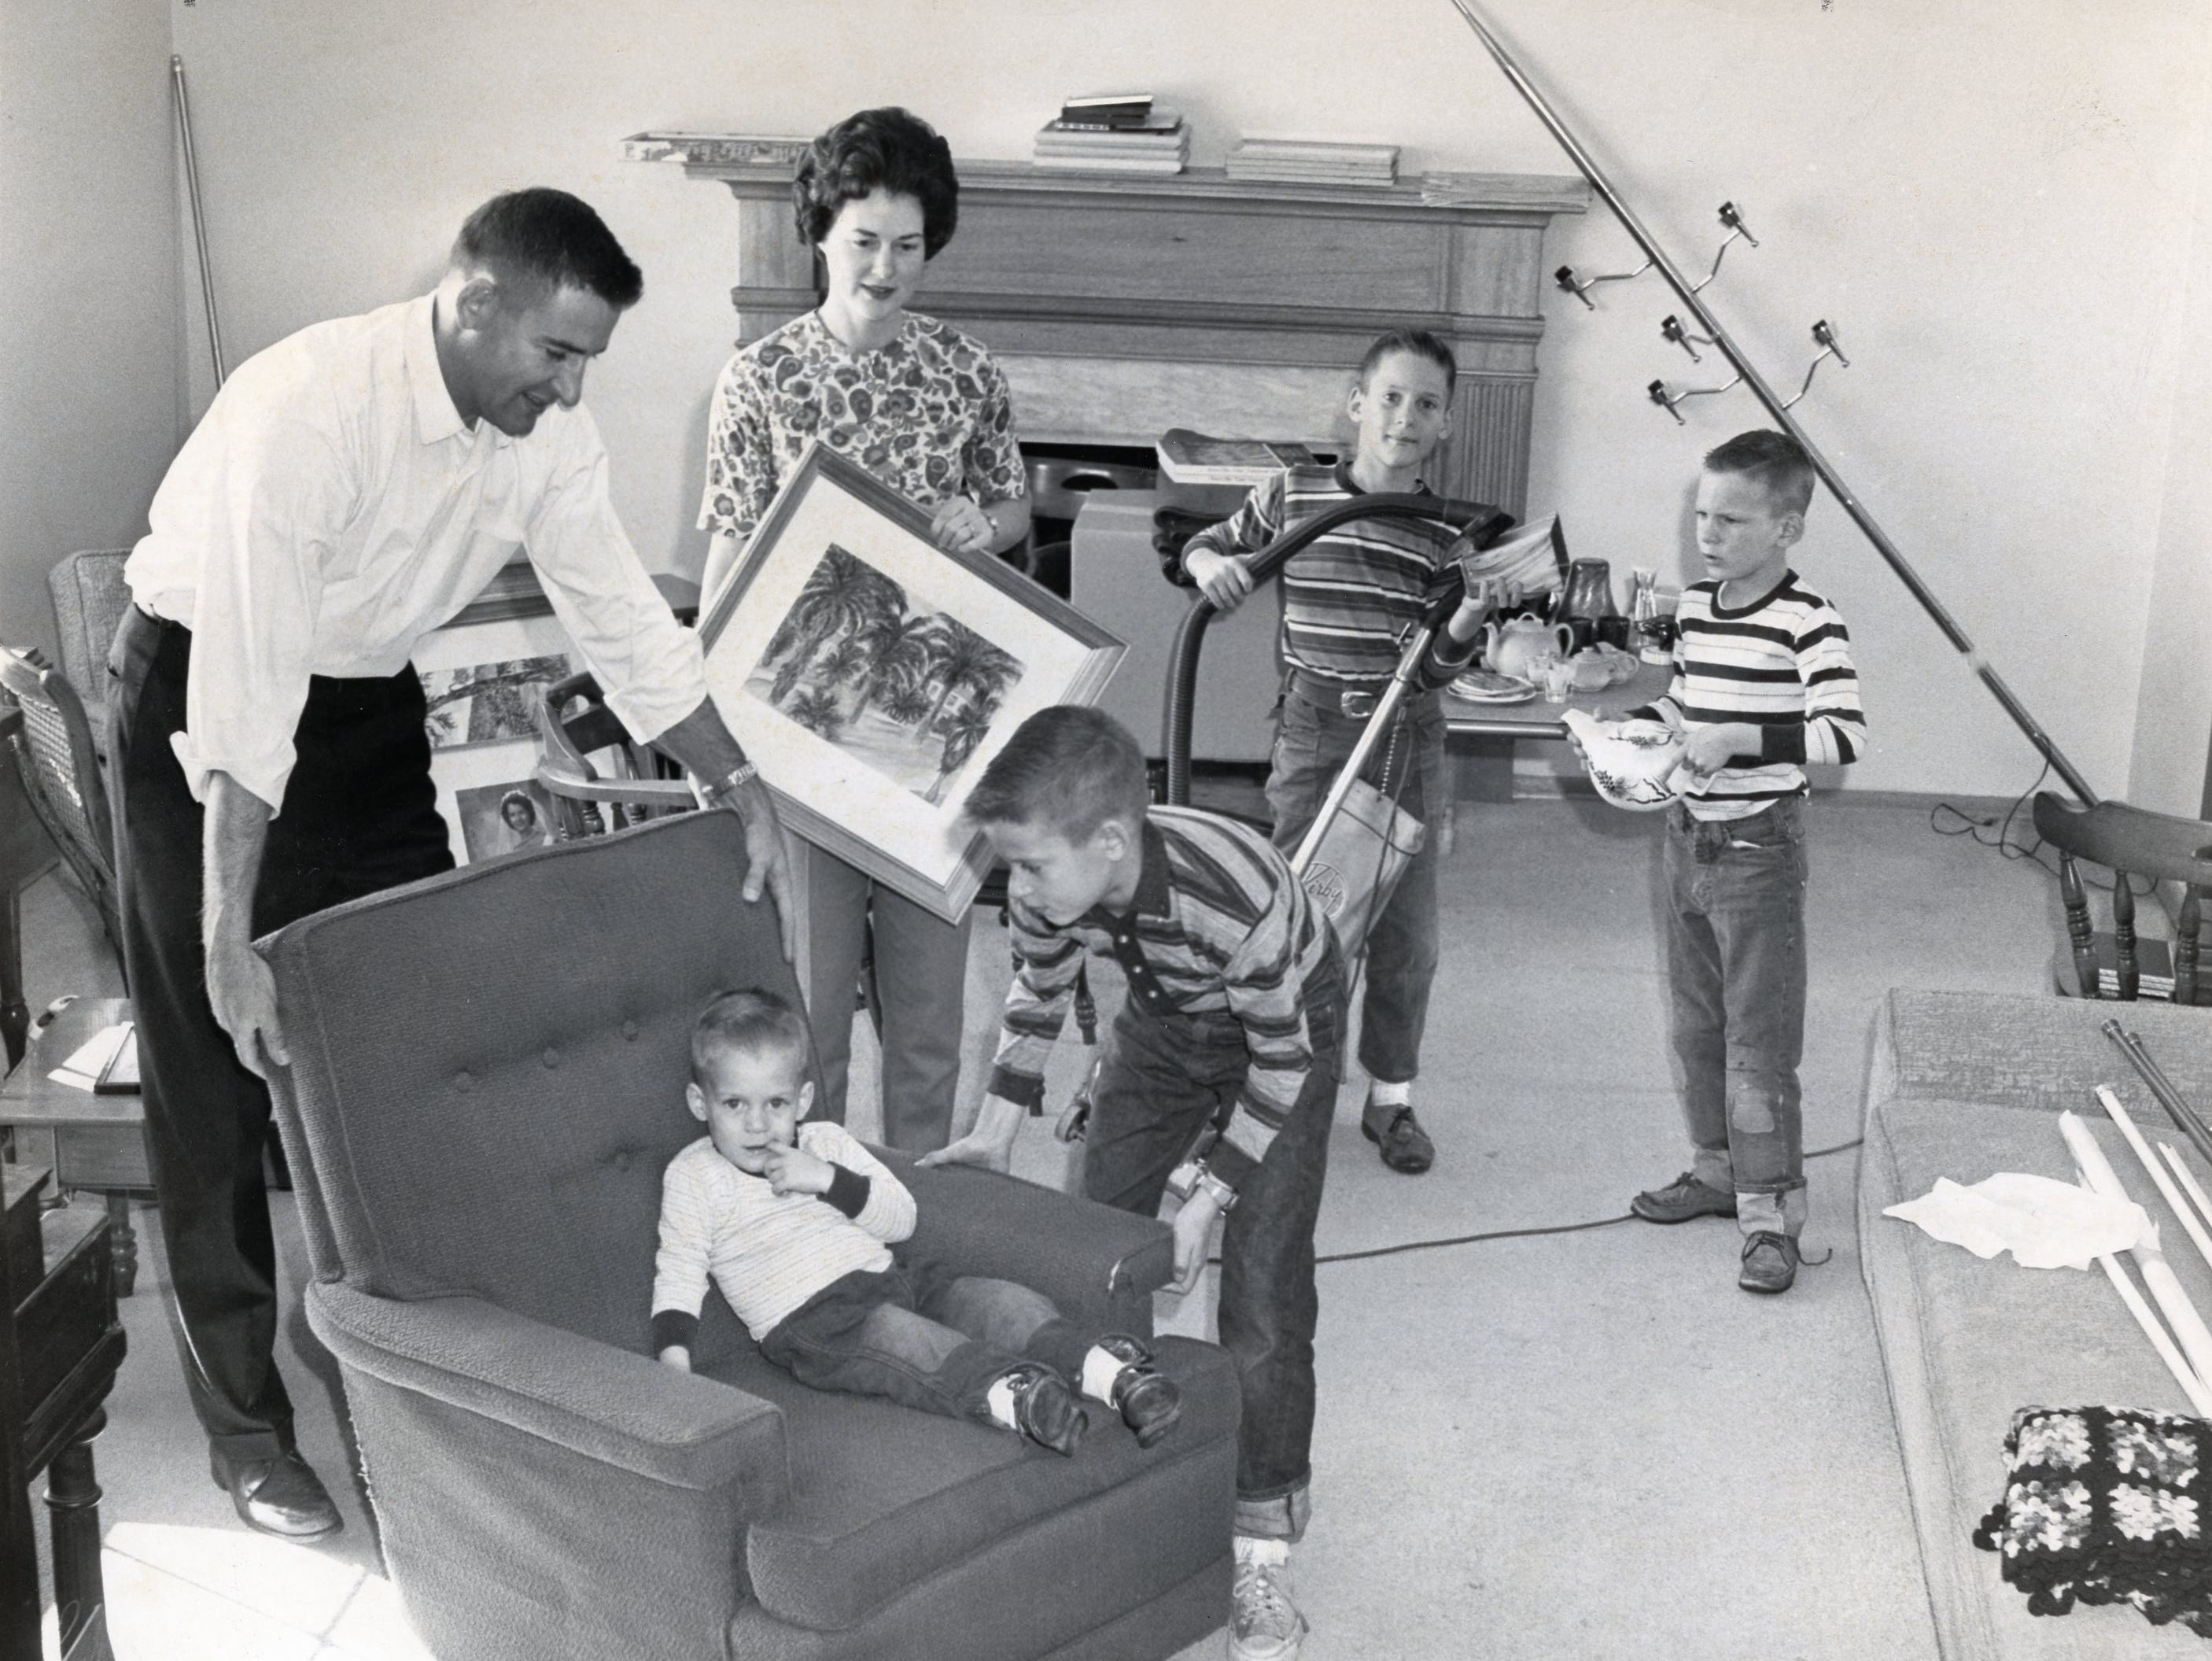 Moving Day, January 5, 1964 for the Dickey family. Pictured are Doug and JoAnne Dickey, Daryl, David, Danny and Don.